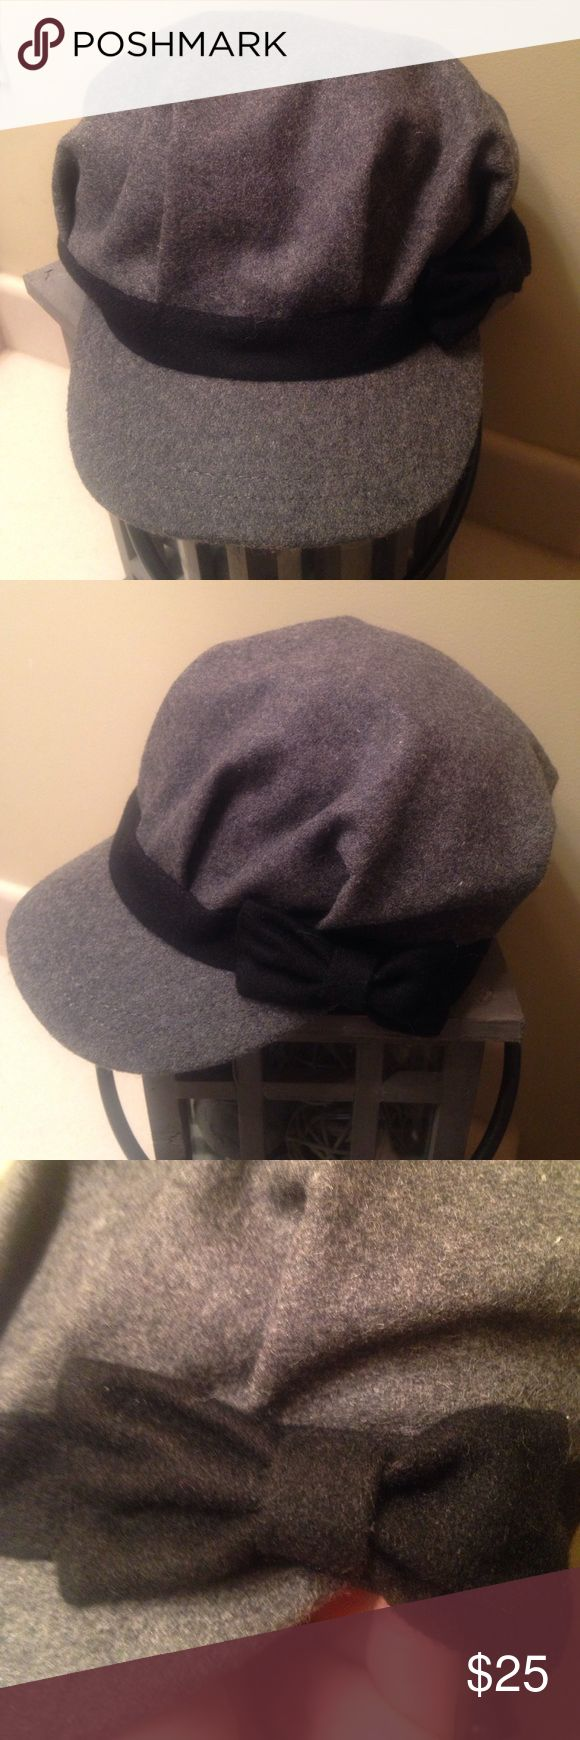 Maurice's Hat Maurice's gray wool/ polyester page boy hat with black bow. Stylish and comfortable. EUC. OS Maurices Accessories Hats